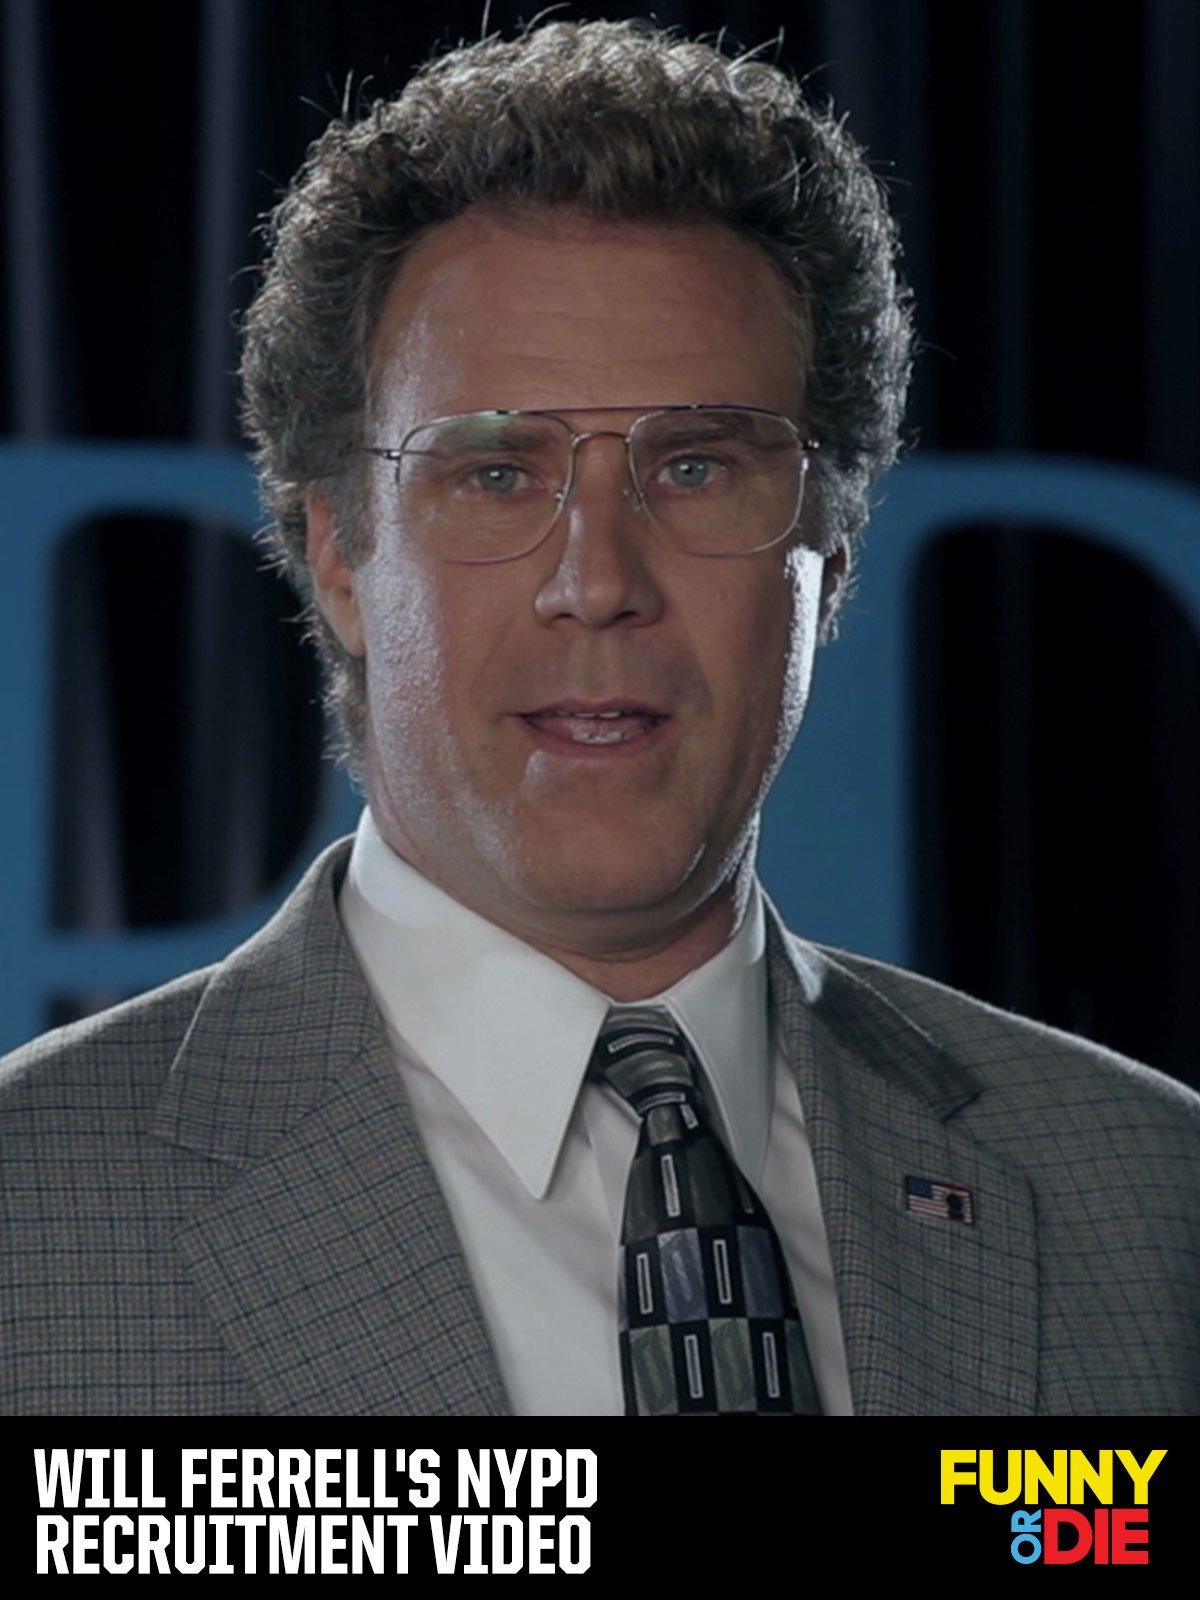 Will Ferrell's NYPD Recruitment Video